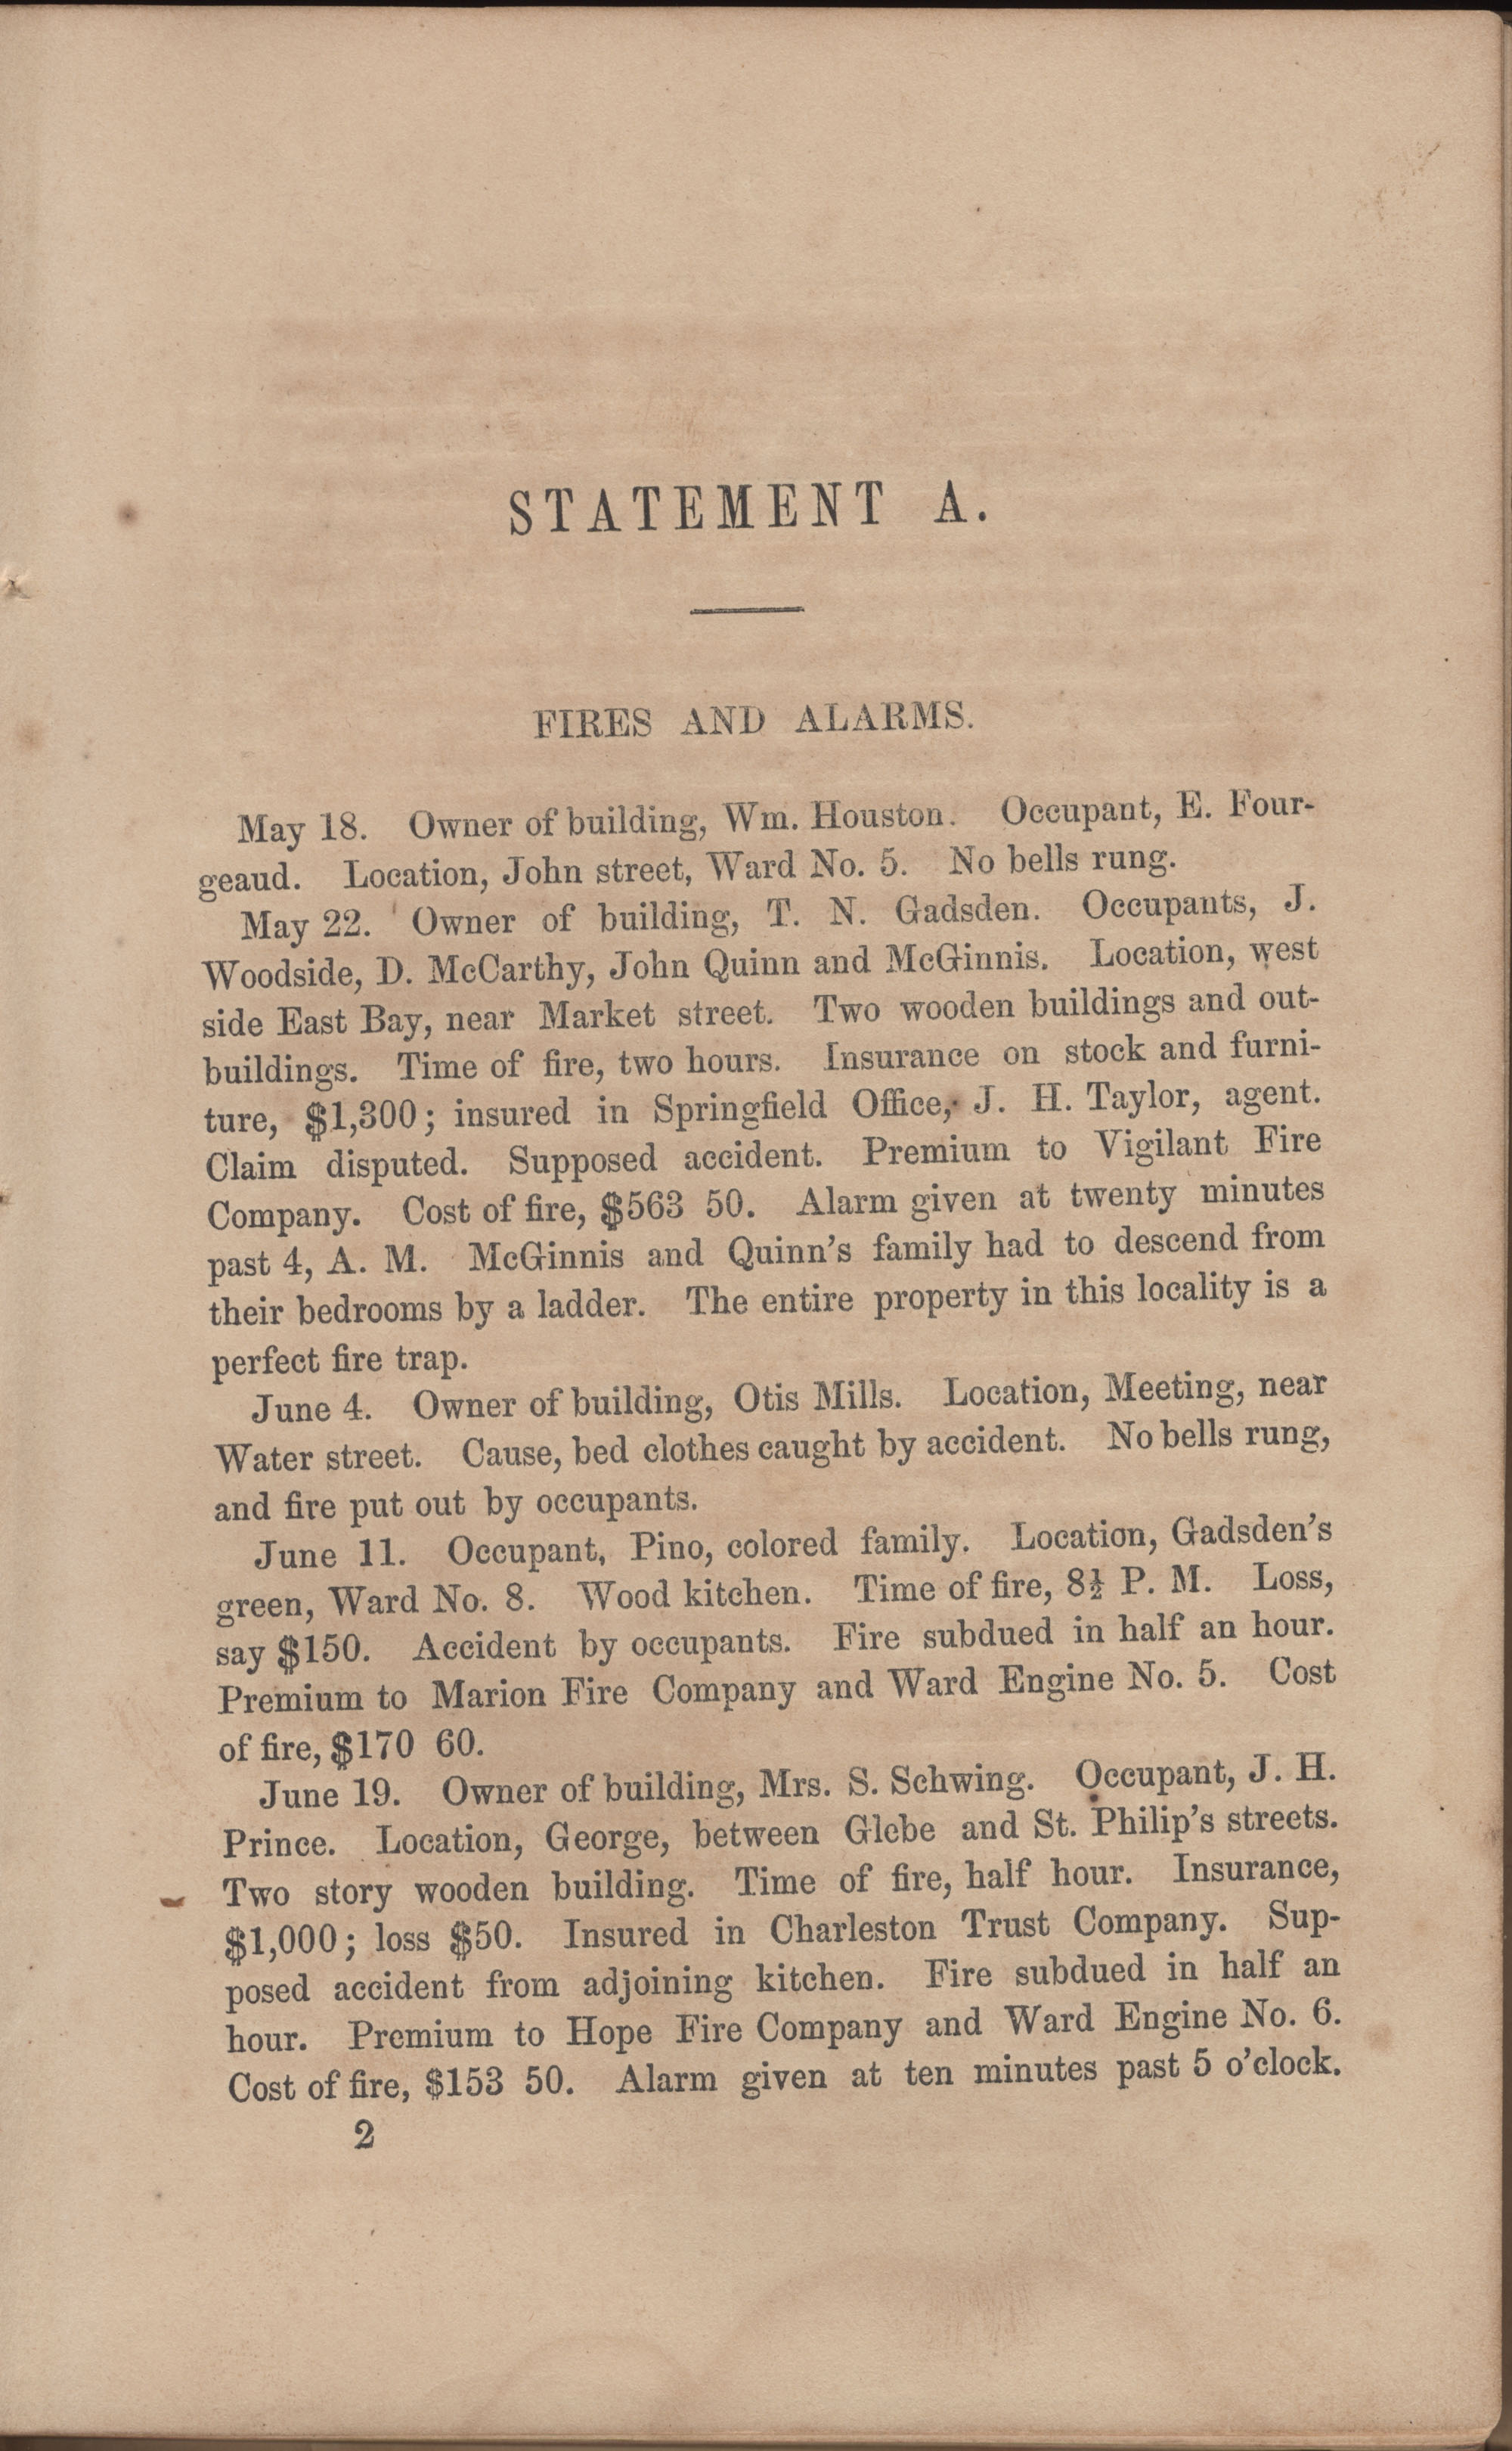 Annual Report of the Chief of the Fire Department of the City of Charleston, page 70